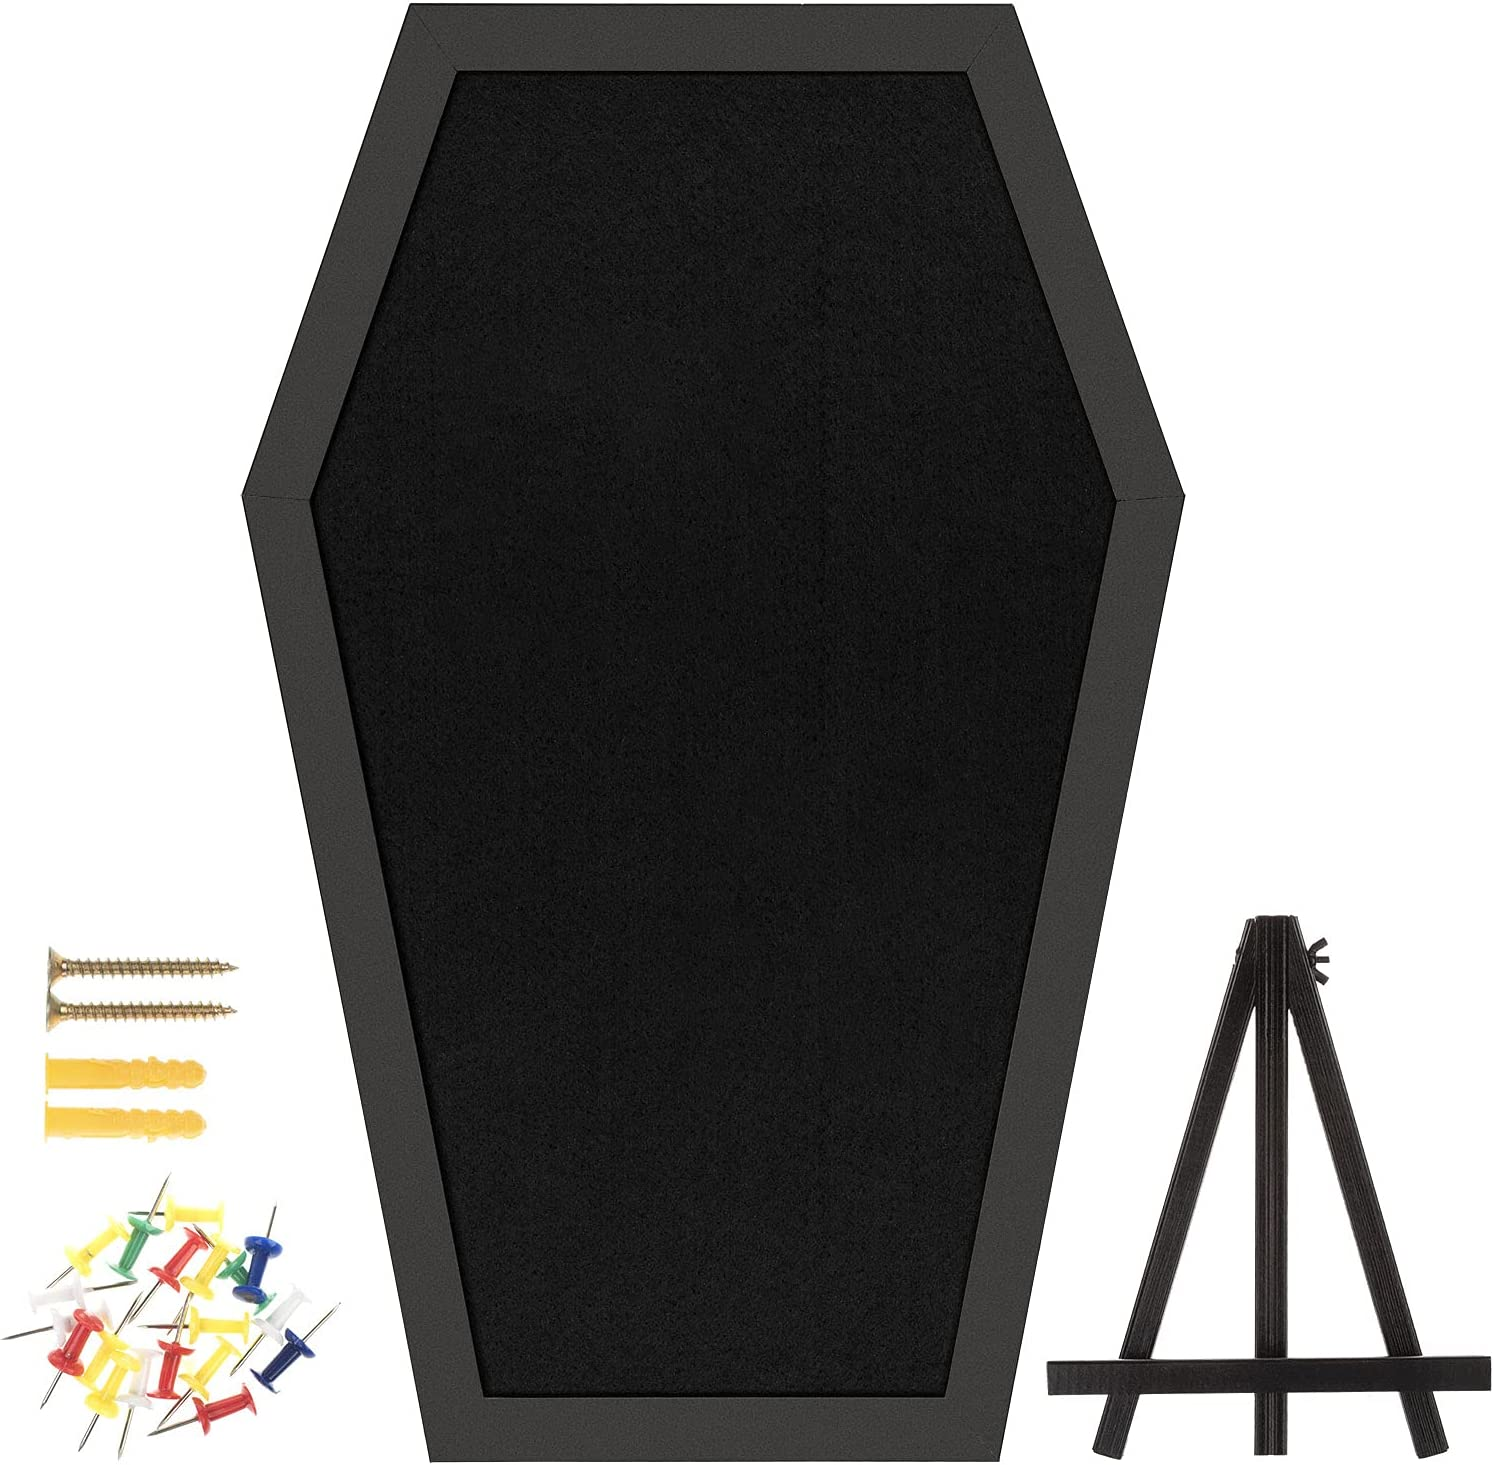 Gothvanity Coffin Pin Display Board - Wooden Felt Bulletin Board for Table Top or Wall - Gothic Decor for Home, Office and School - 17 x 11 Inches - Black